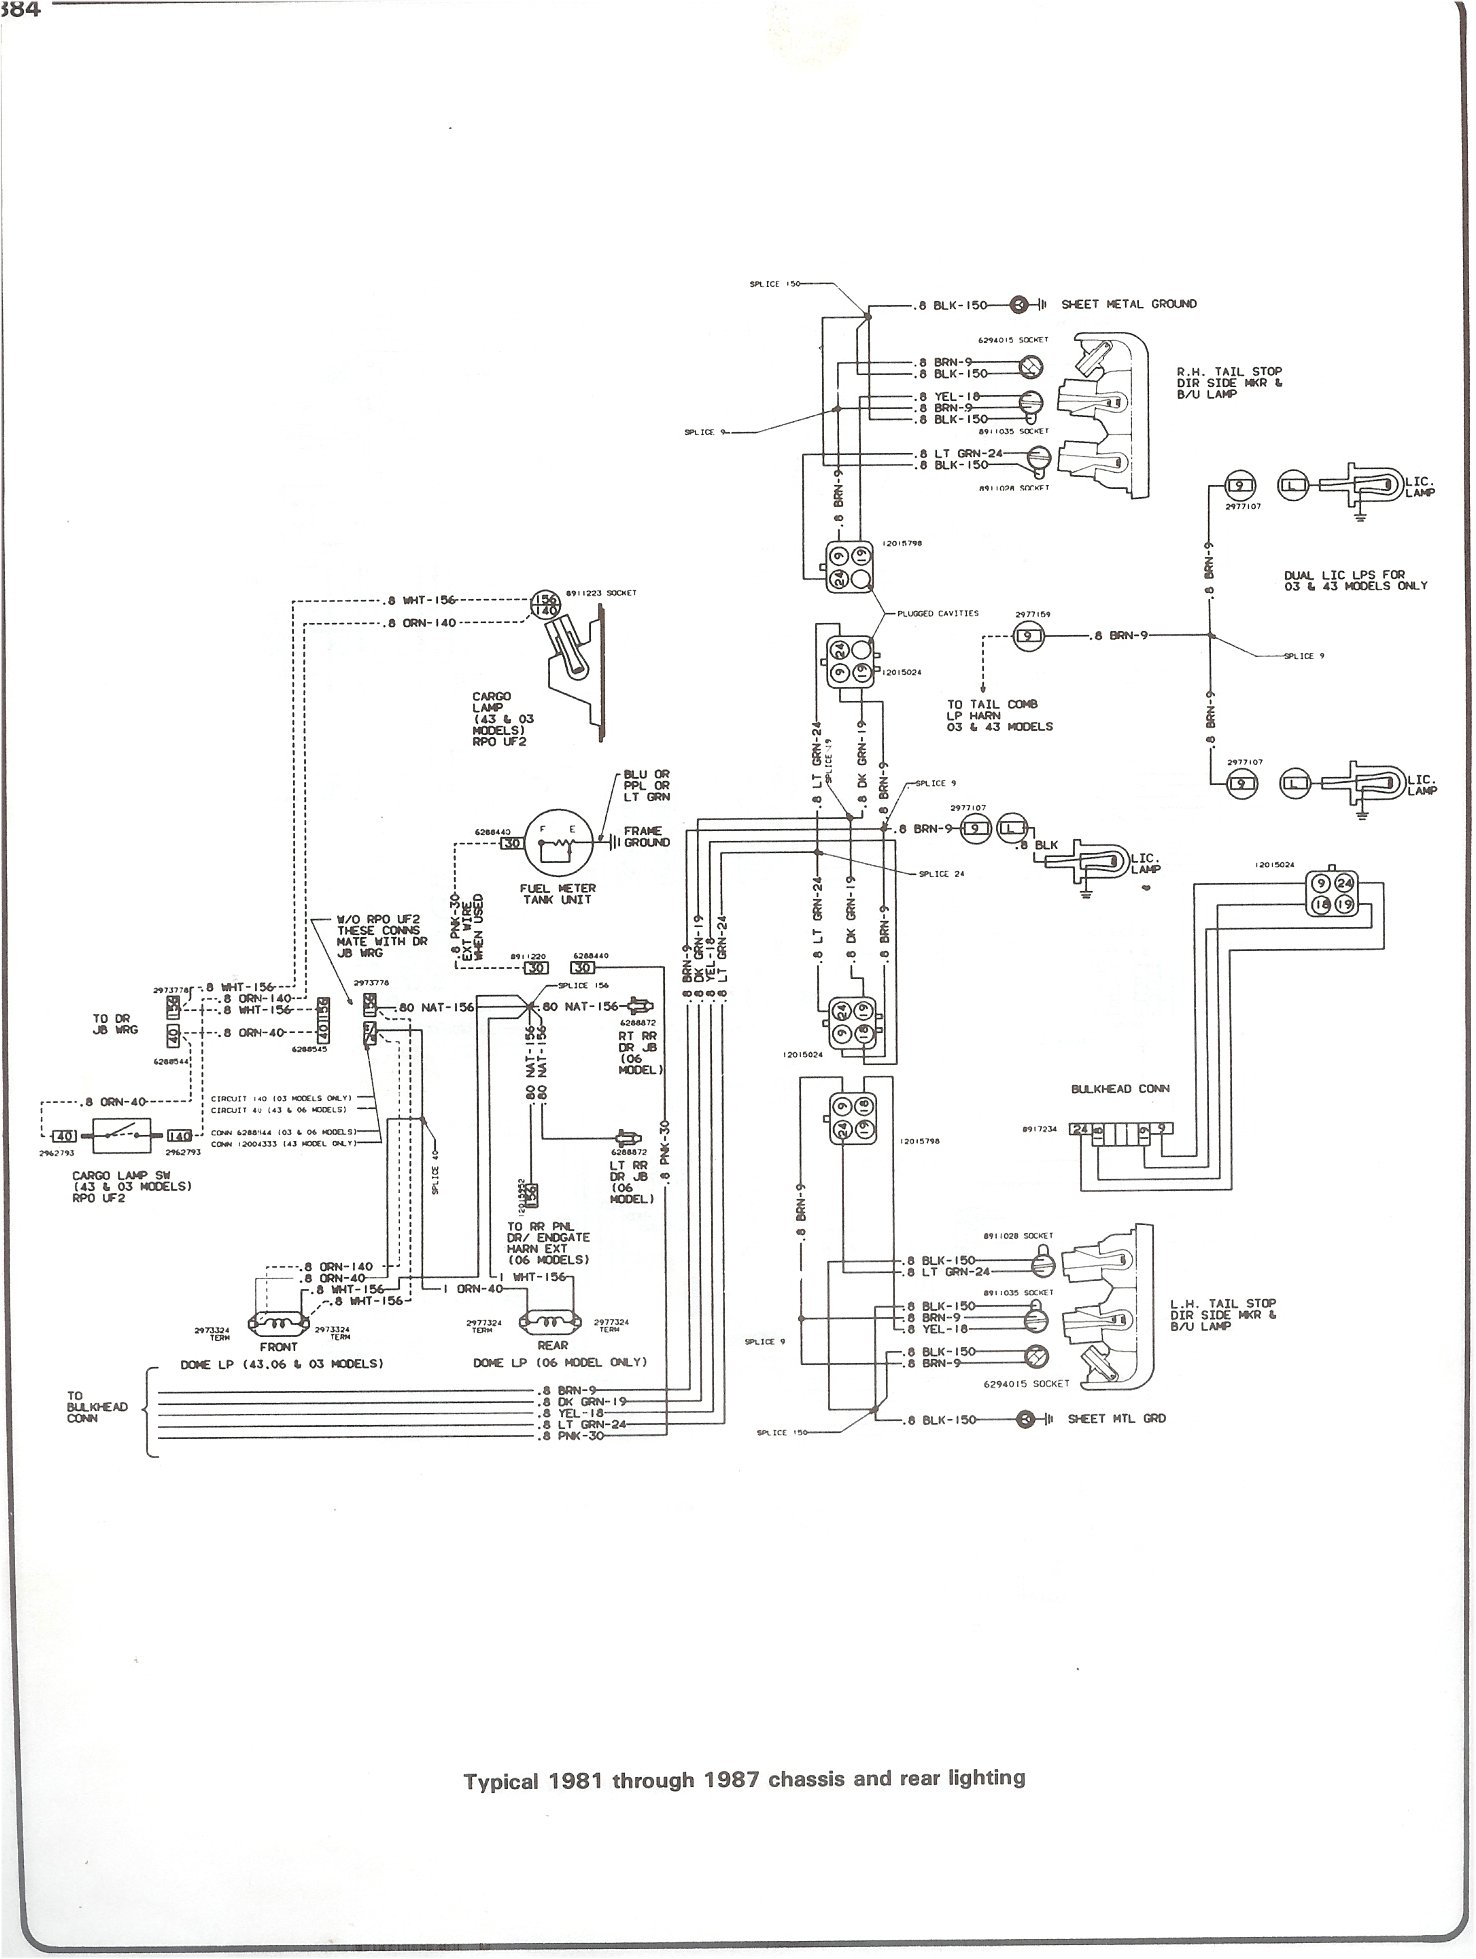 1985 Gm Headlight Switch Diagram - Wiring Diagrams Lose  Chevy Headlight Wiring Diagram on chevy fuse box diagram, chevy headlight sensor, chevy radiator diagram, 2004 chevy trailblazer transmission diagram, 4l60e wiring harness diagram, dodge wiring harness diagram, chevy headlight adjustment, chevy silverado fuel system diagram, 2005 chevy impala ignition switch diagram, 1963 c10 dash diagram, relay wiring diagram, chevy alternator diagram, headlight dimmer switch diagram, 2000 chevrolet truck wiring diagram, chevy headlight switch, chevy light switch diagram, 97 chevy truck tail light diagram, chevy drl relay, headlight wire harness diagram, headlight circuit diagram,